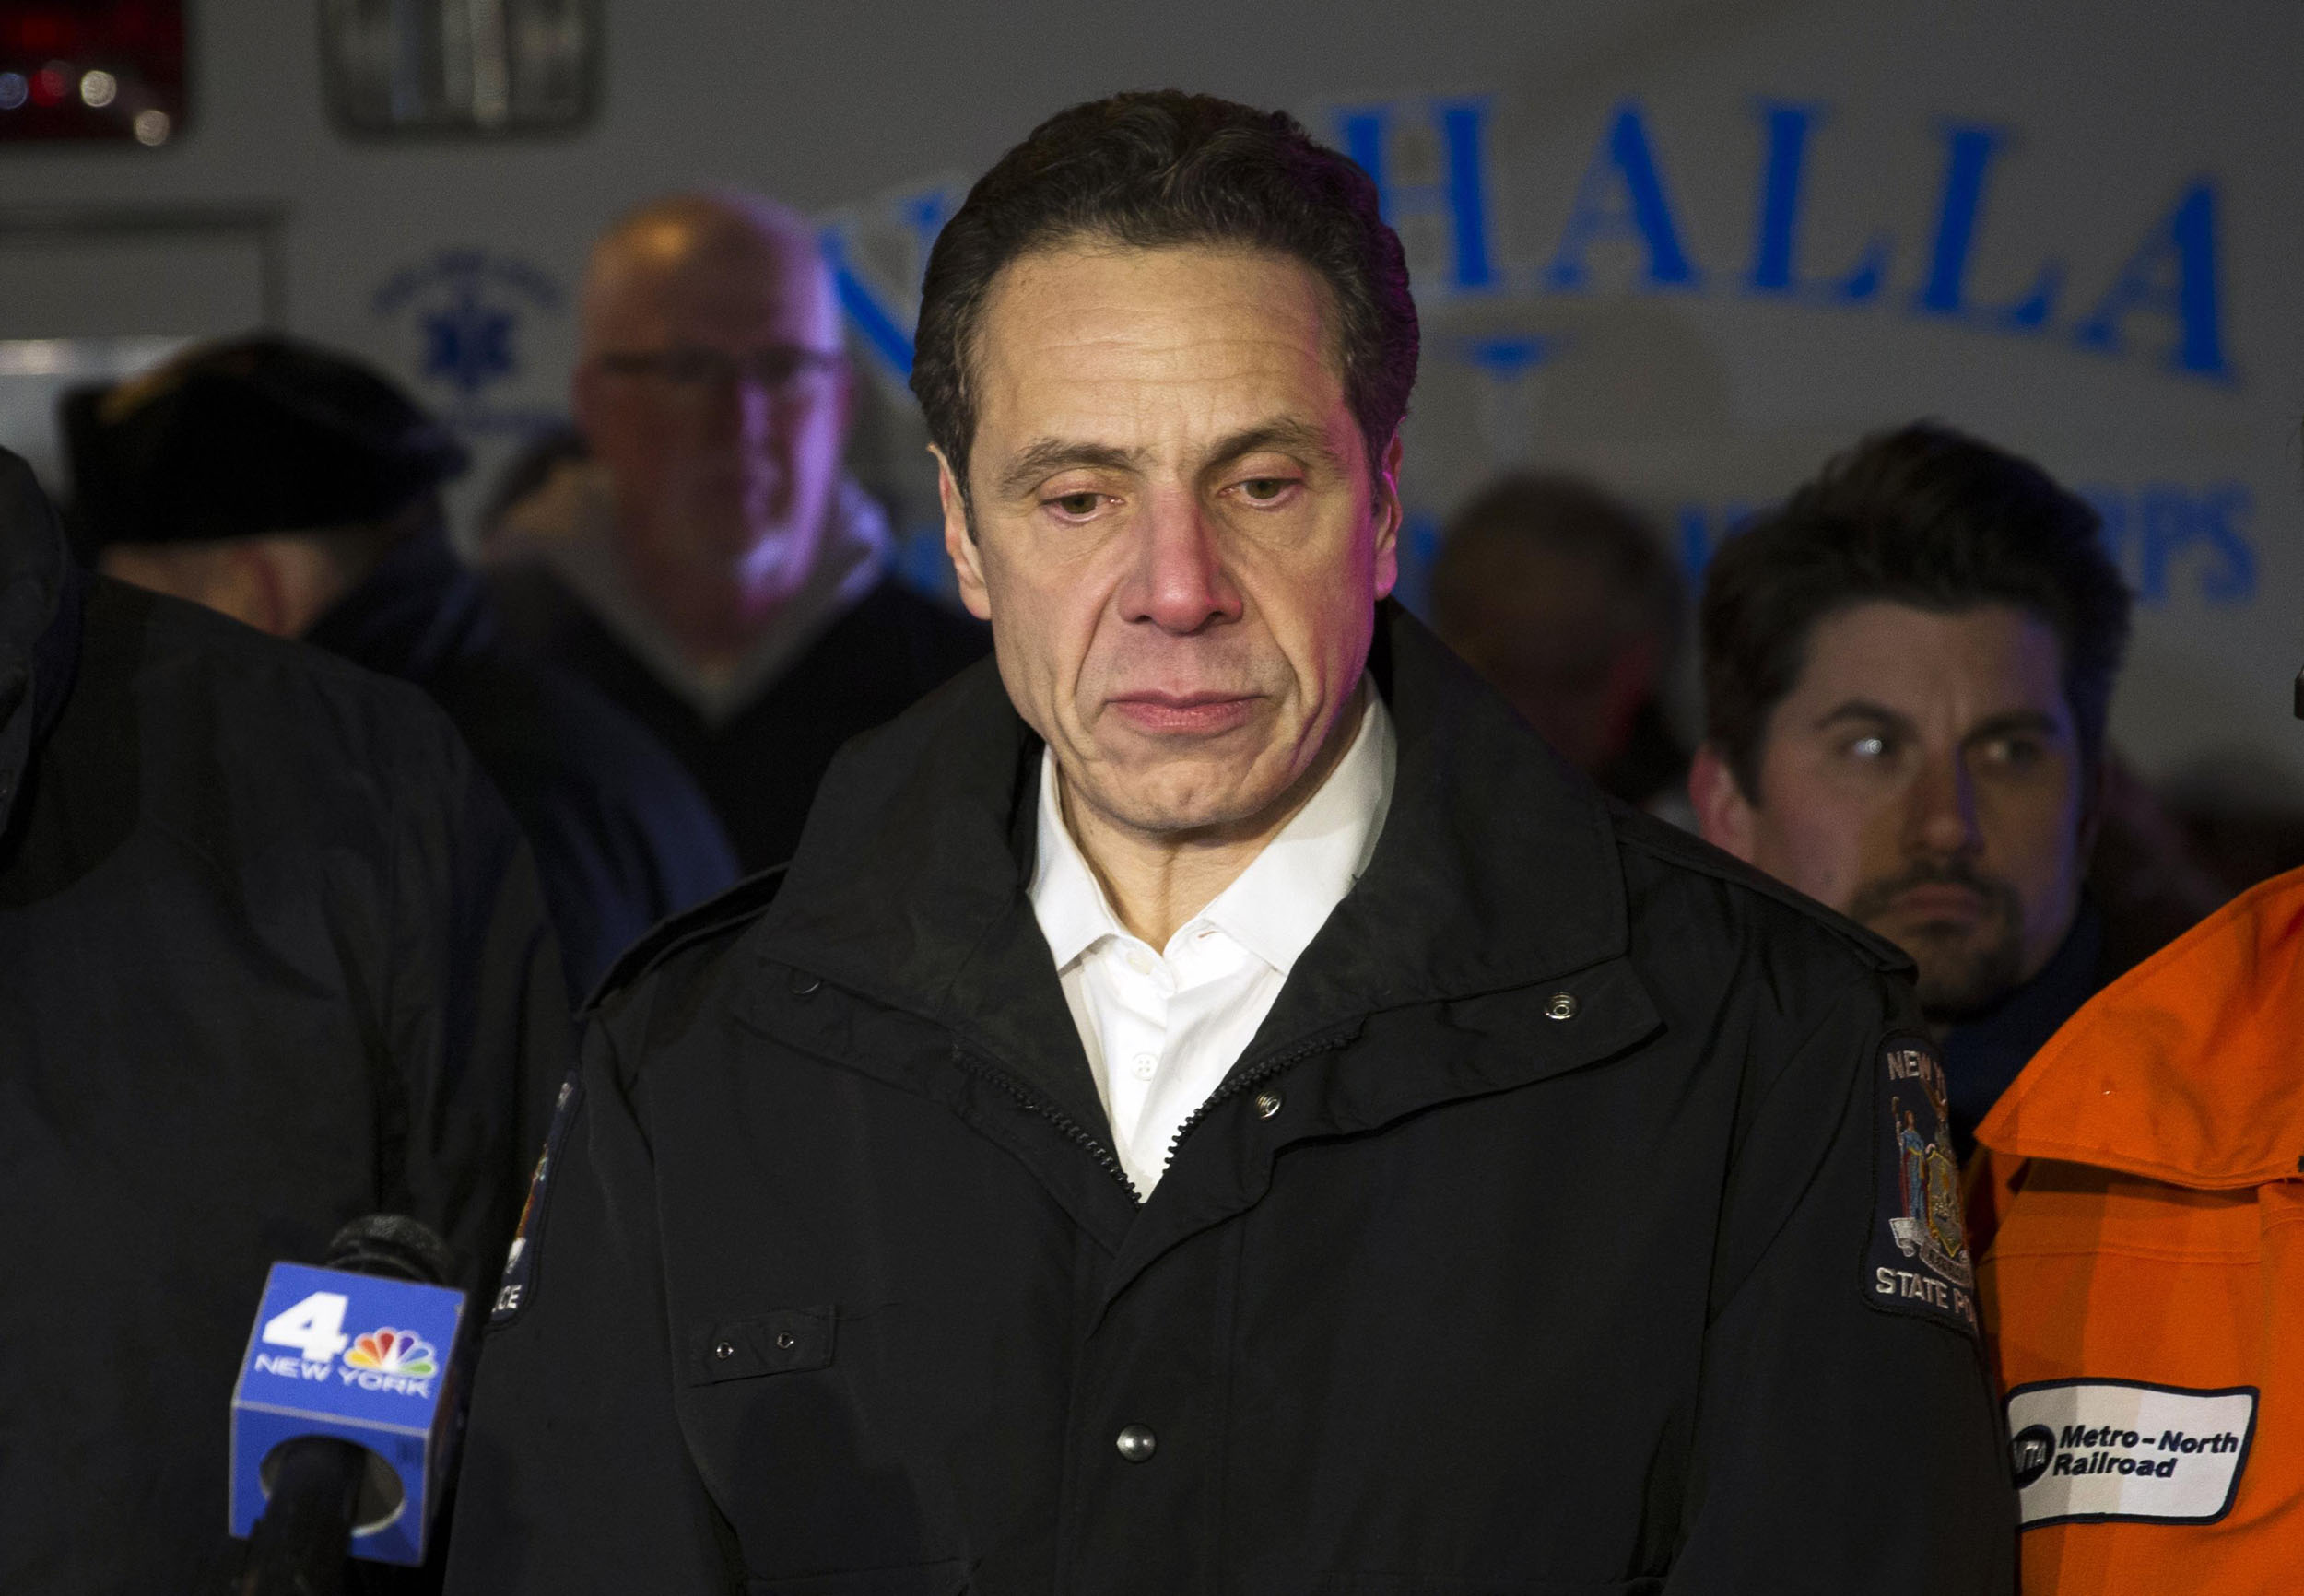 New York Governor Andrew Cuomo pauses as he speaks holds a press conference near the site where a Metro North commuter train hit a car near Valhalla, N.Y. on Feb. 3, 2015.